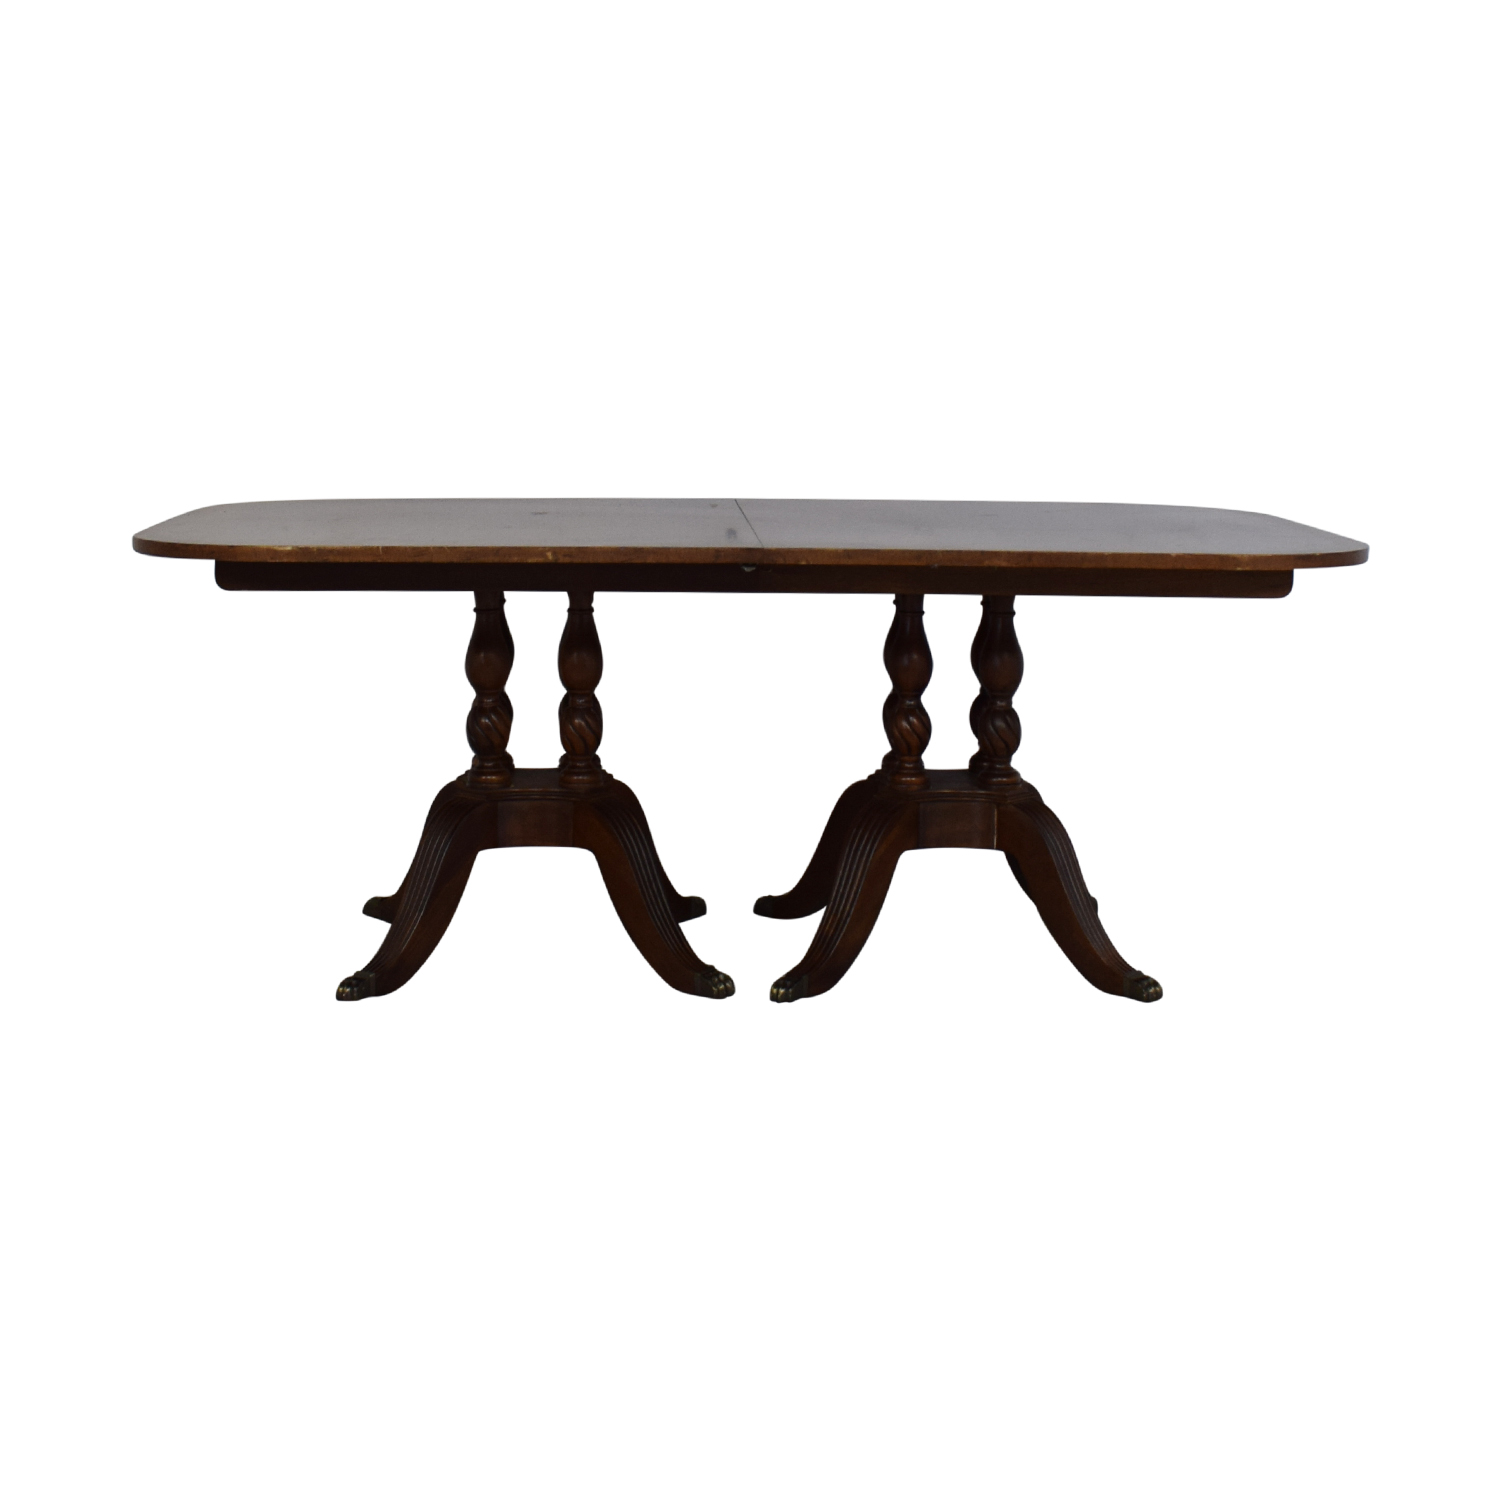 Drexel Heritage Drexel Heritage Dinner Table used